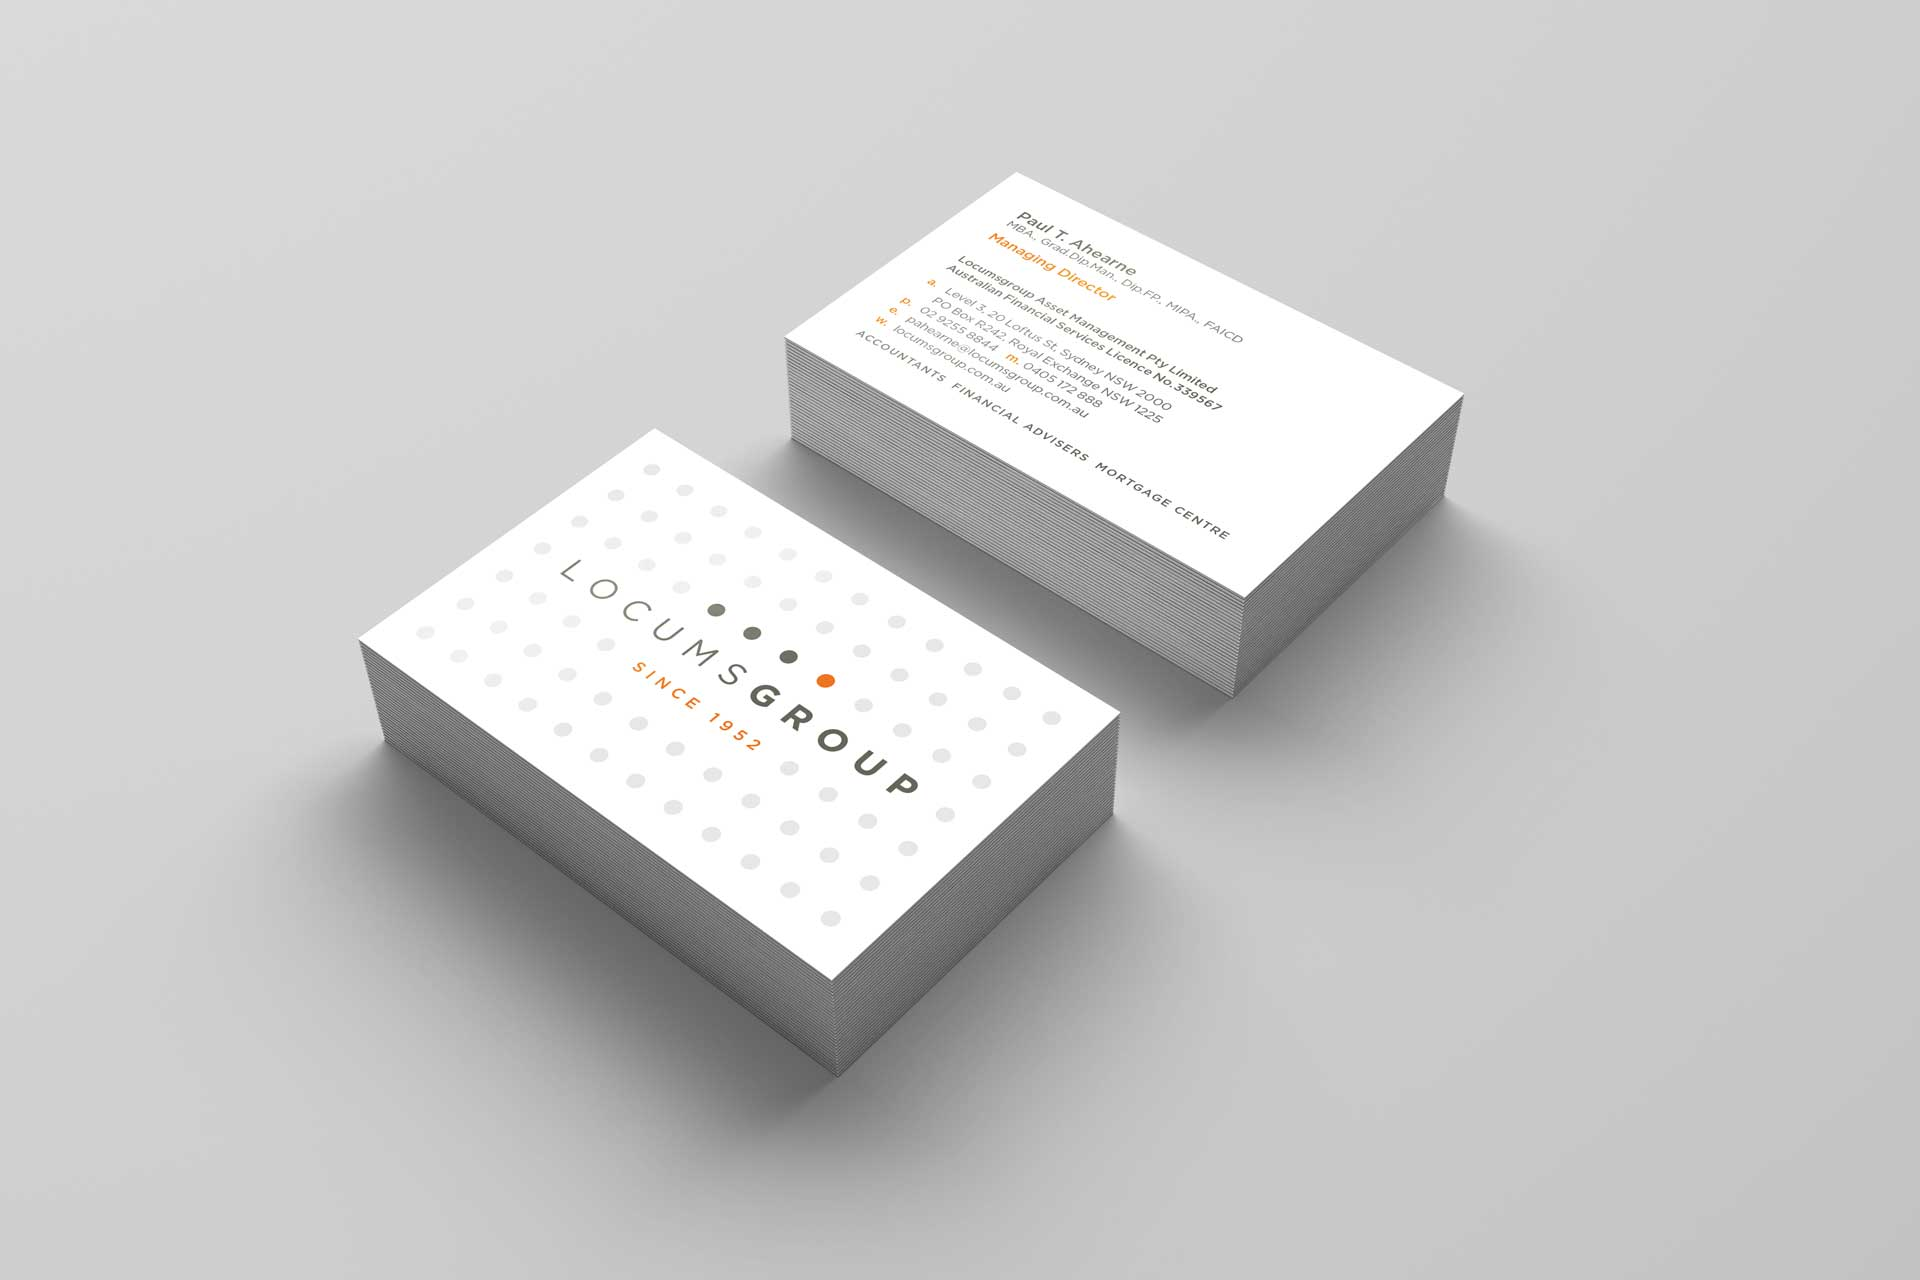 Lovely Image Of Cheap Business Cards Sydney - Business Cards and ...